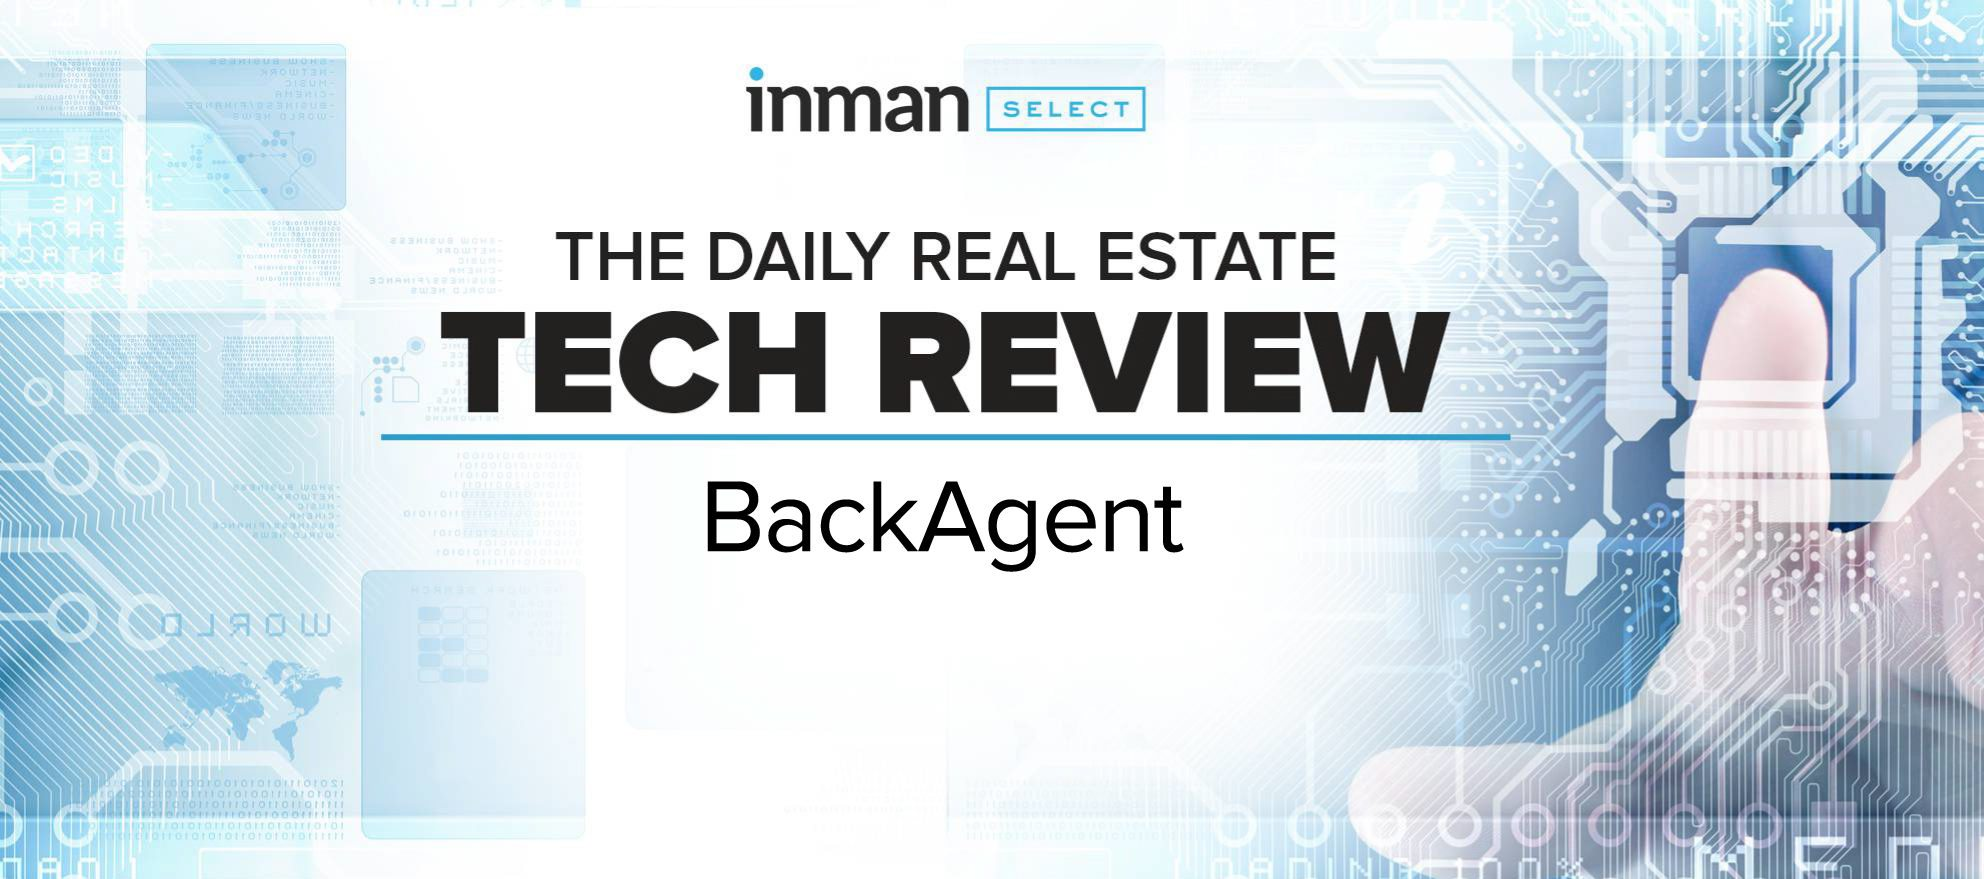 BackAgent should be top-of-mind for transactions and office collaboration